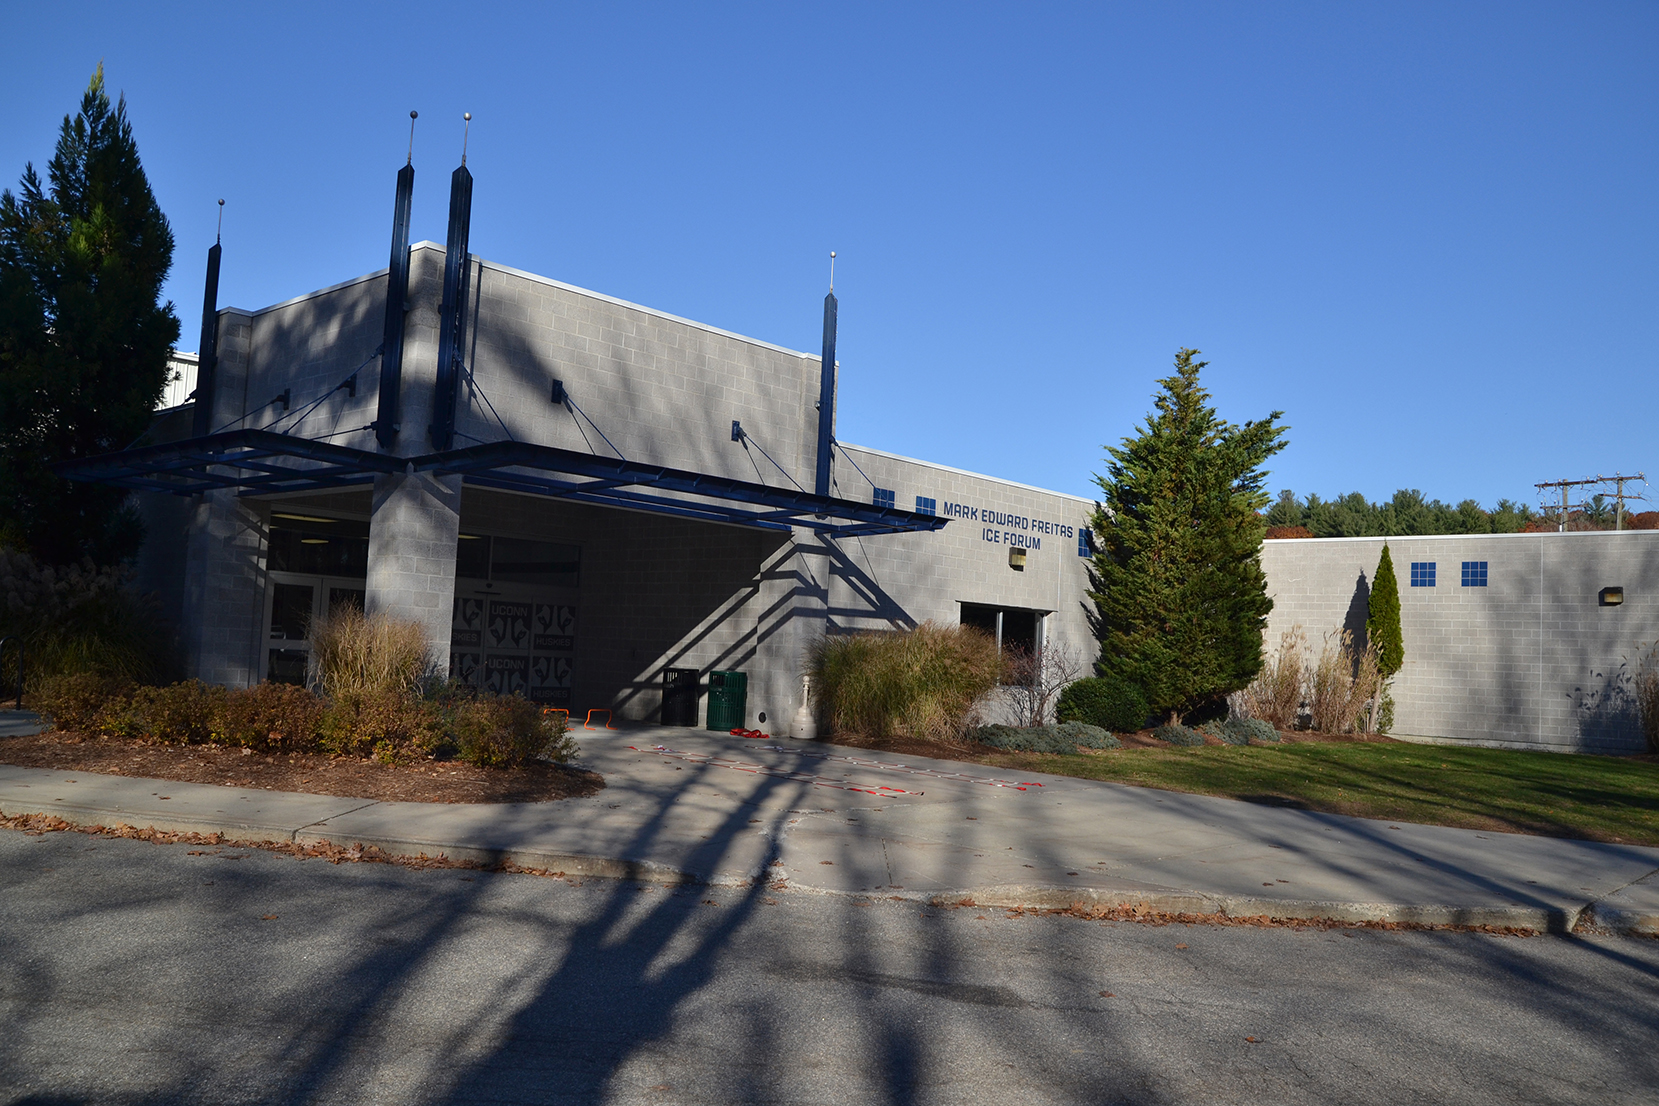 The University of Connecticut is considering a two-pronged approach of expanding the team's downtown Hartford venue while doubling the capacity of Freitas Ice Forum, a rink on campus, to meet Hockey East standards, said Director of Athletics Warde Manuel. (Amar Batra/The Daily Campus)